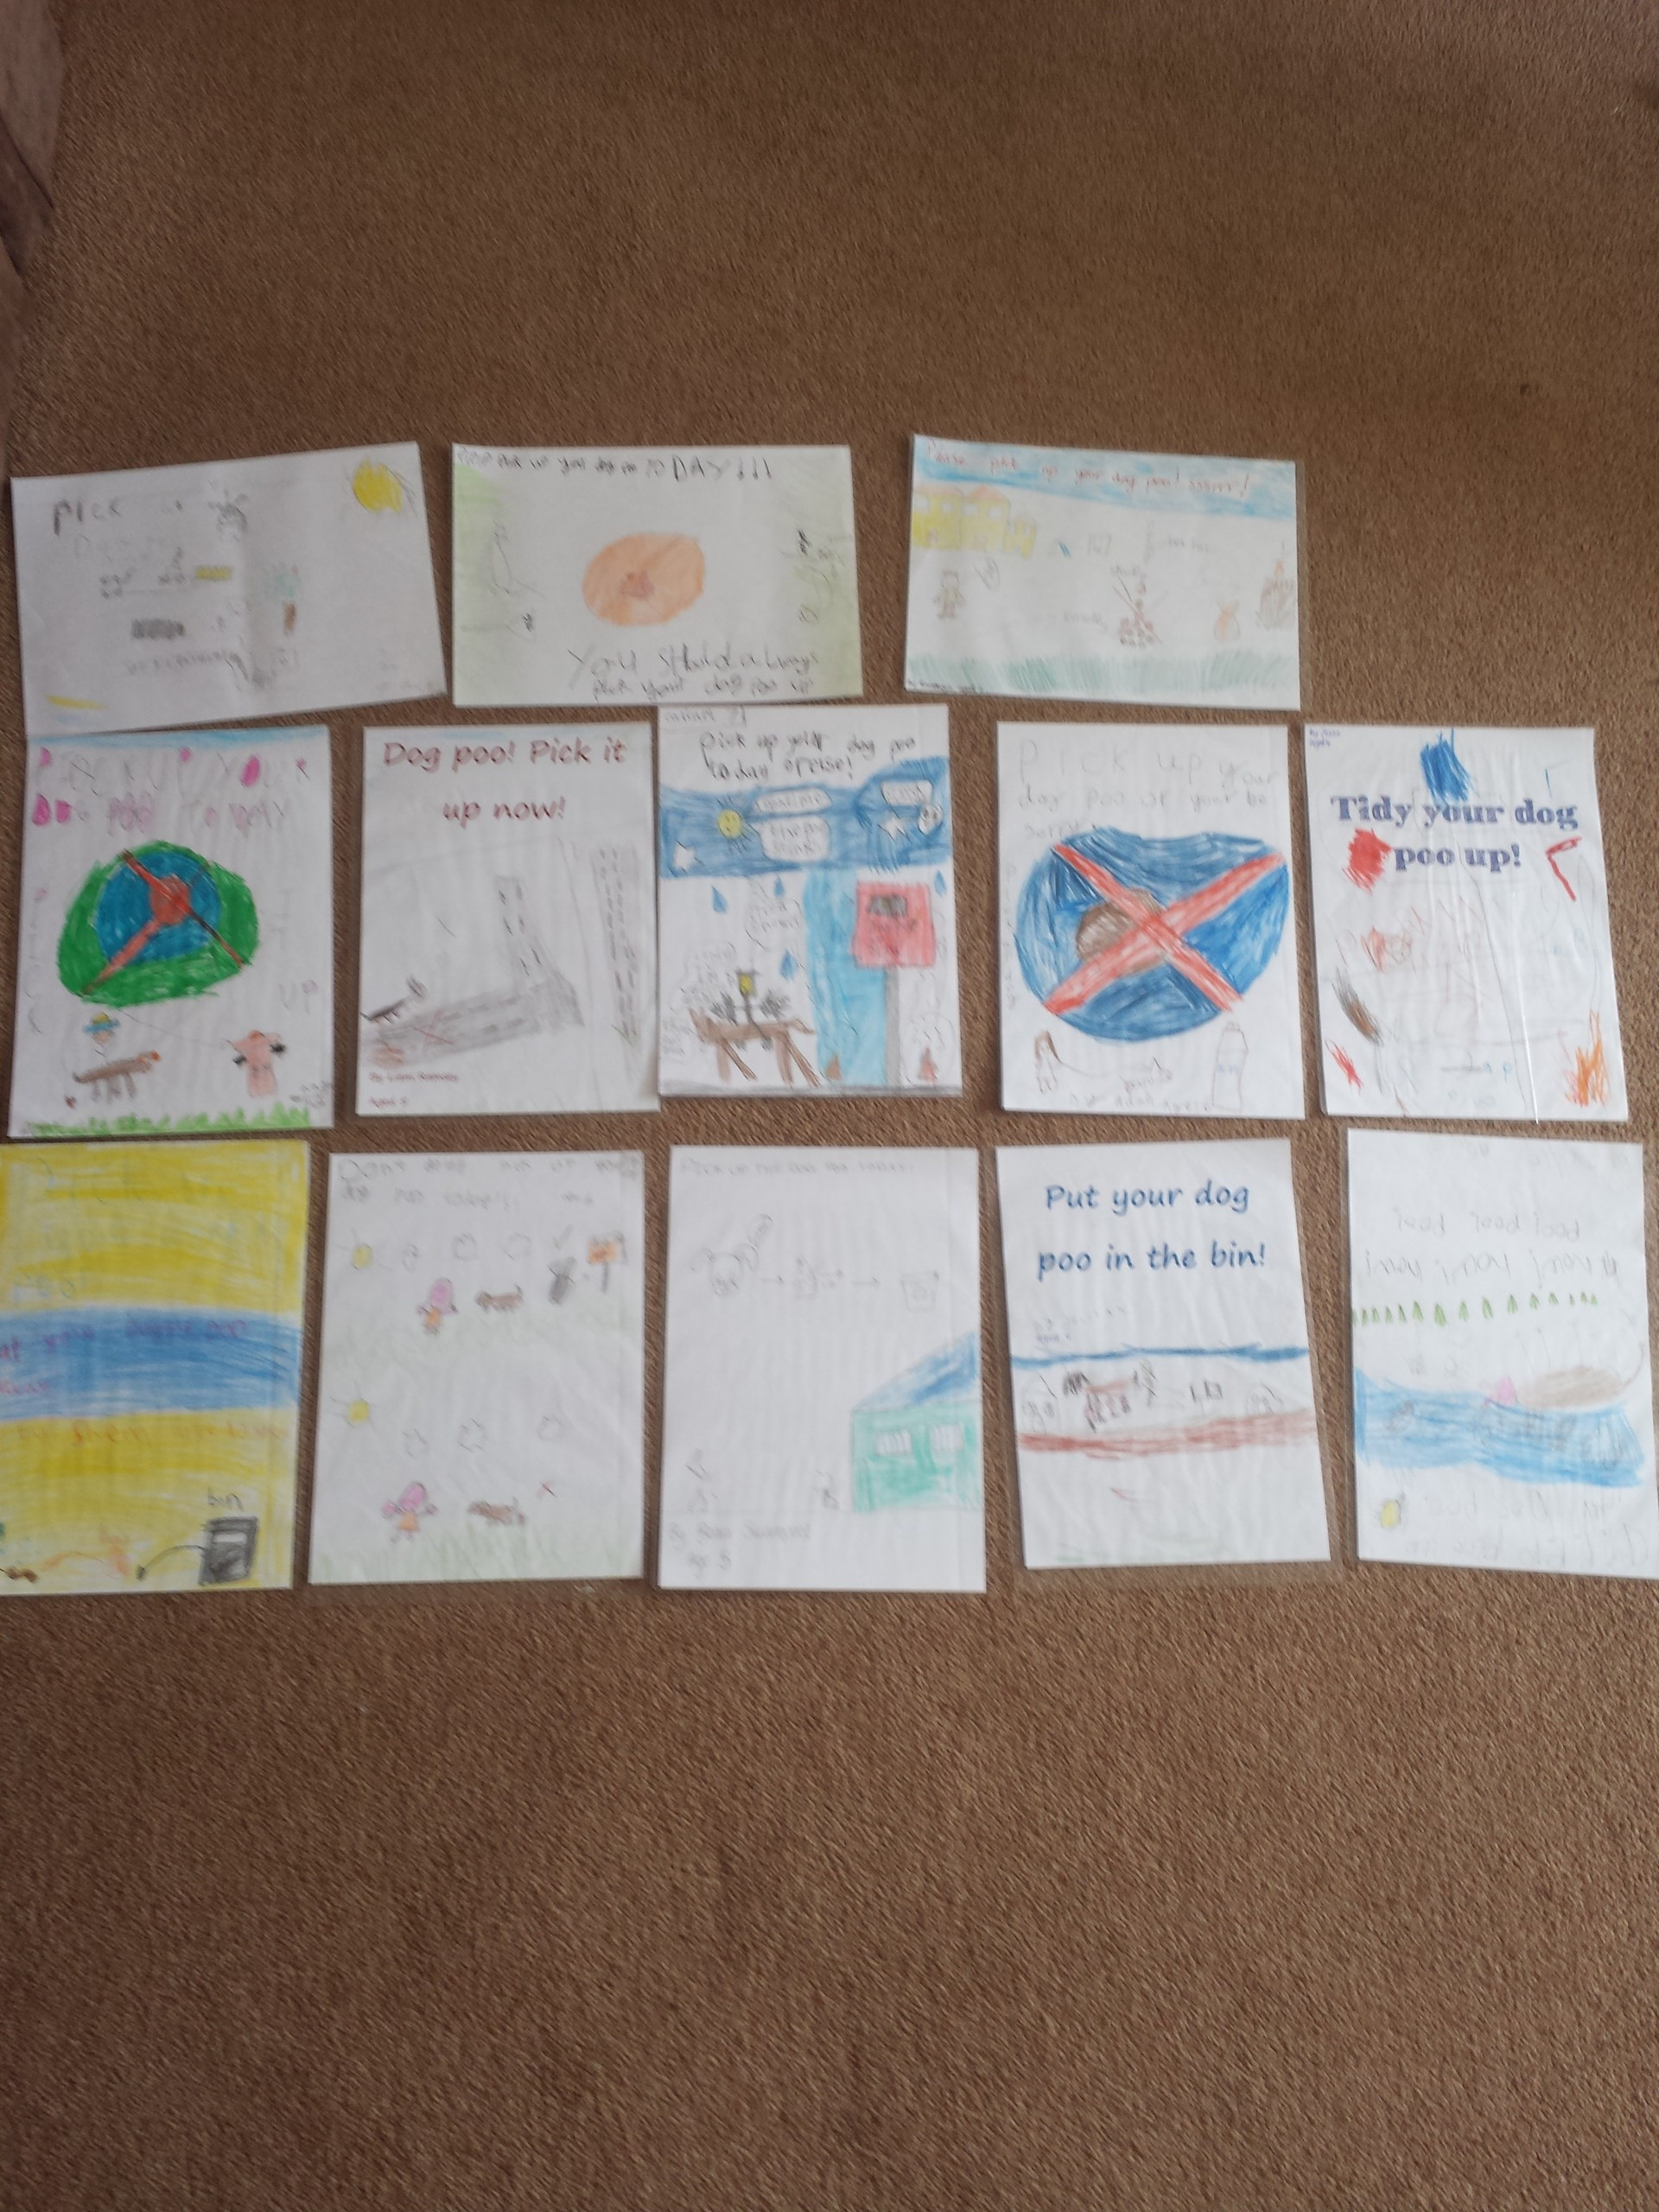 Posters designed by KS1 pupils